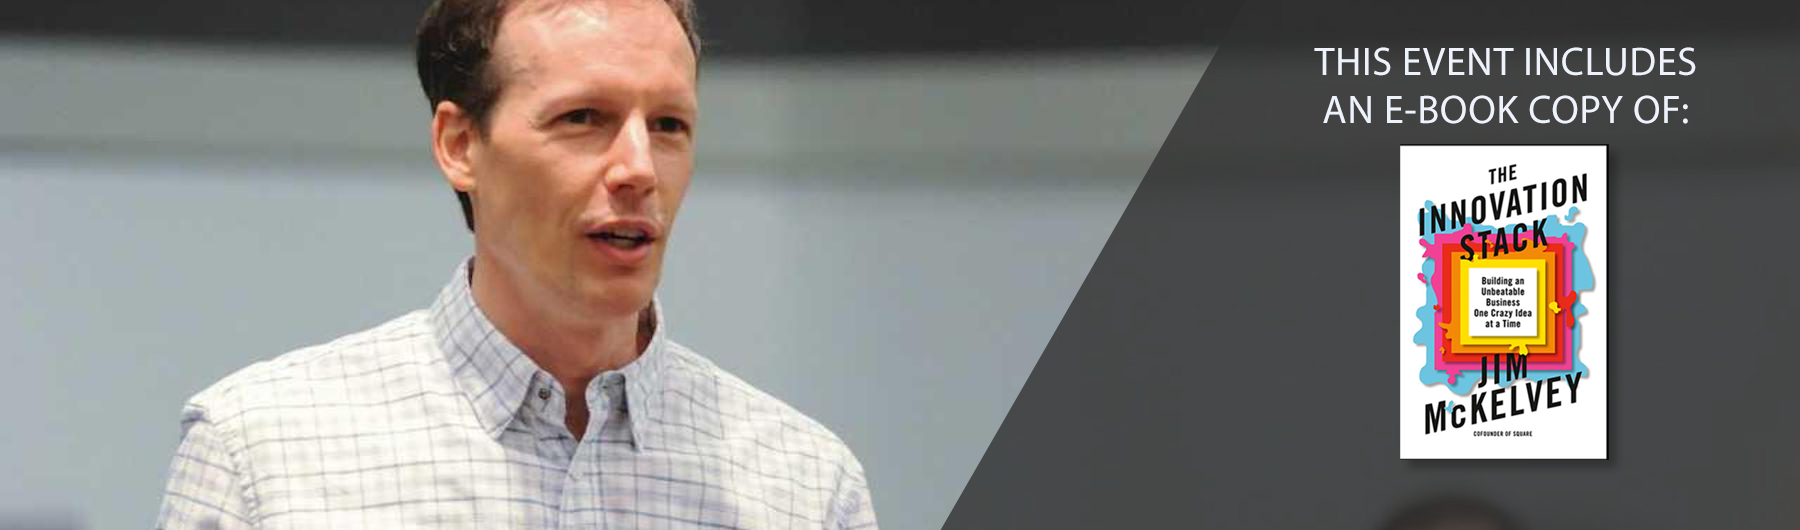 Innovation as a competitive advantage with Square Co-founder, Jim McKelvey